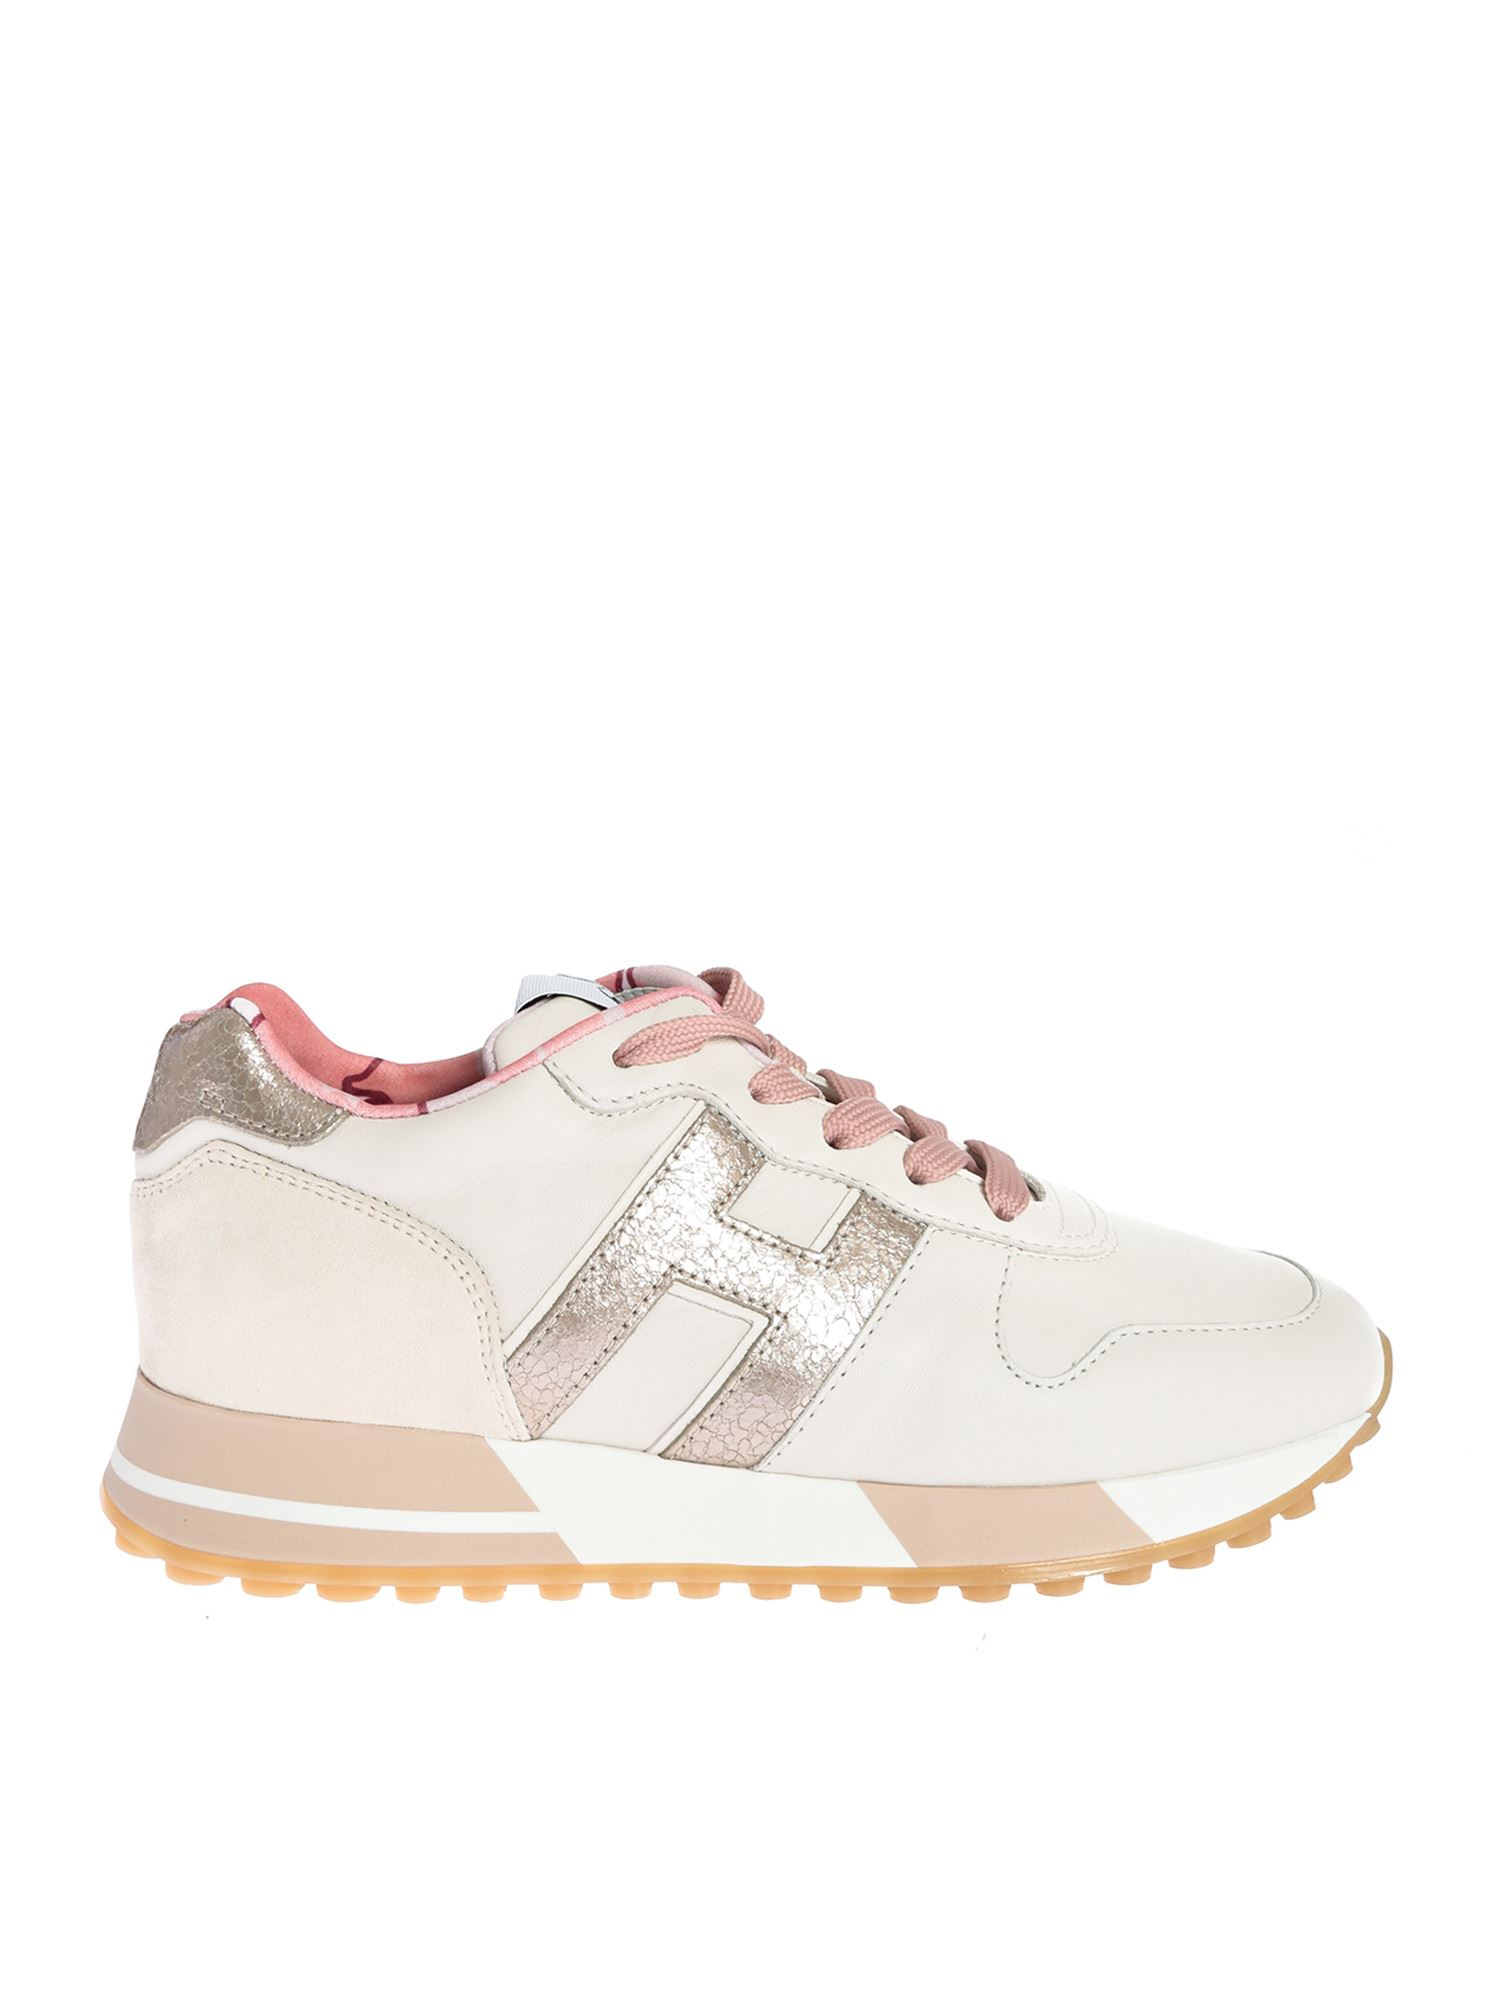 Hogan Leathers H383 SNEAKERS IN CREAM AND PINK